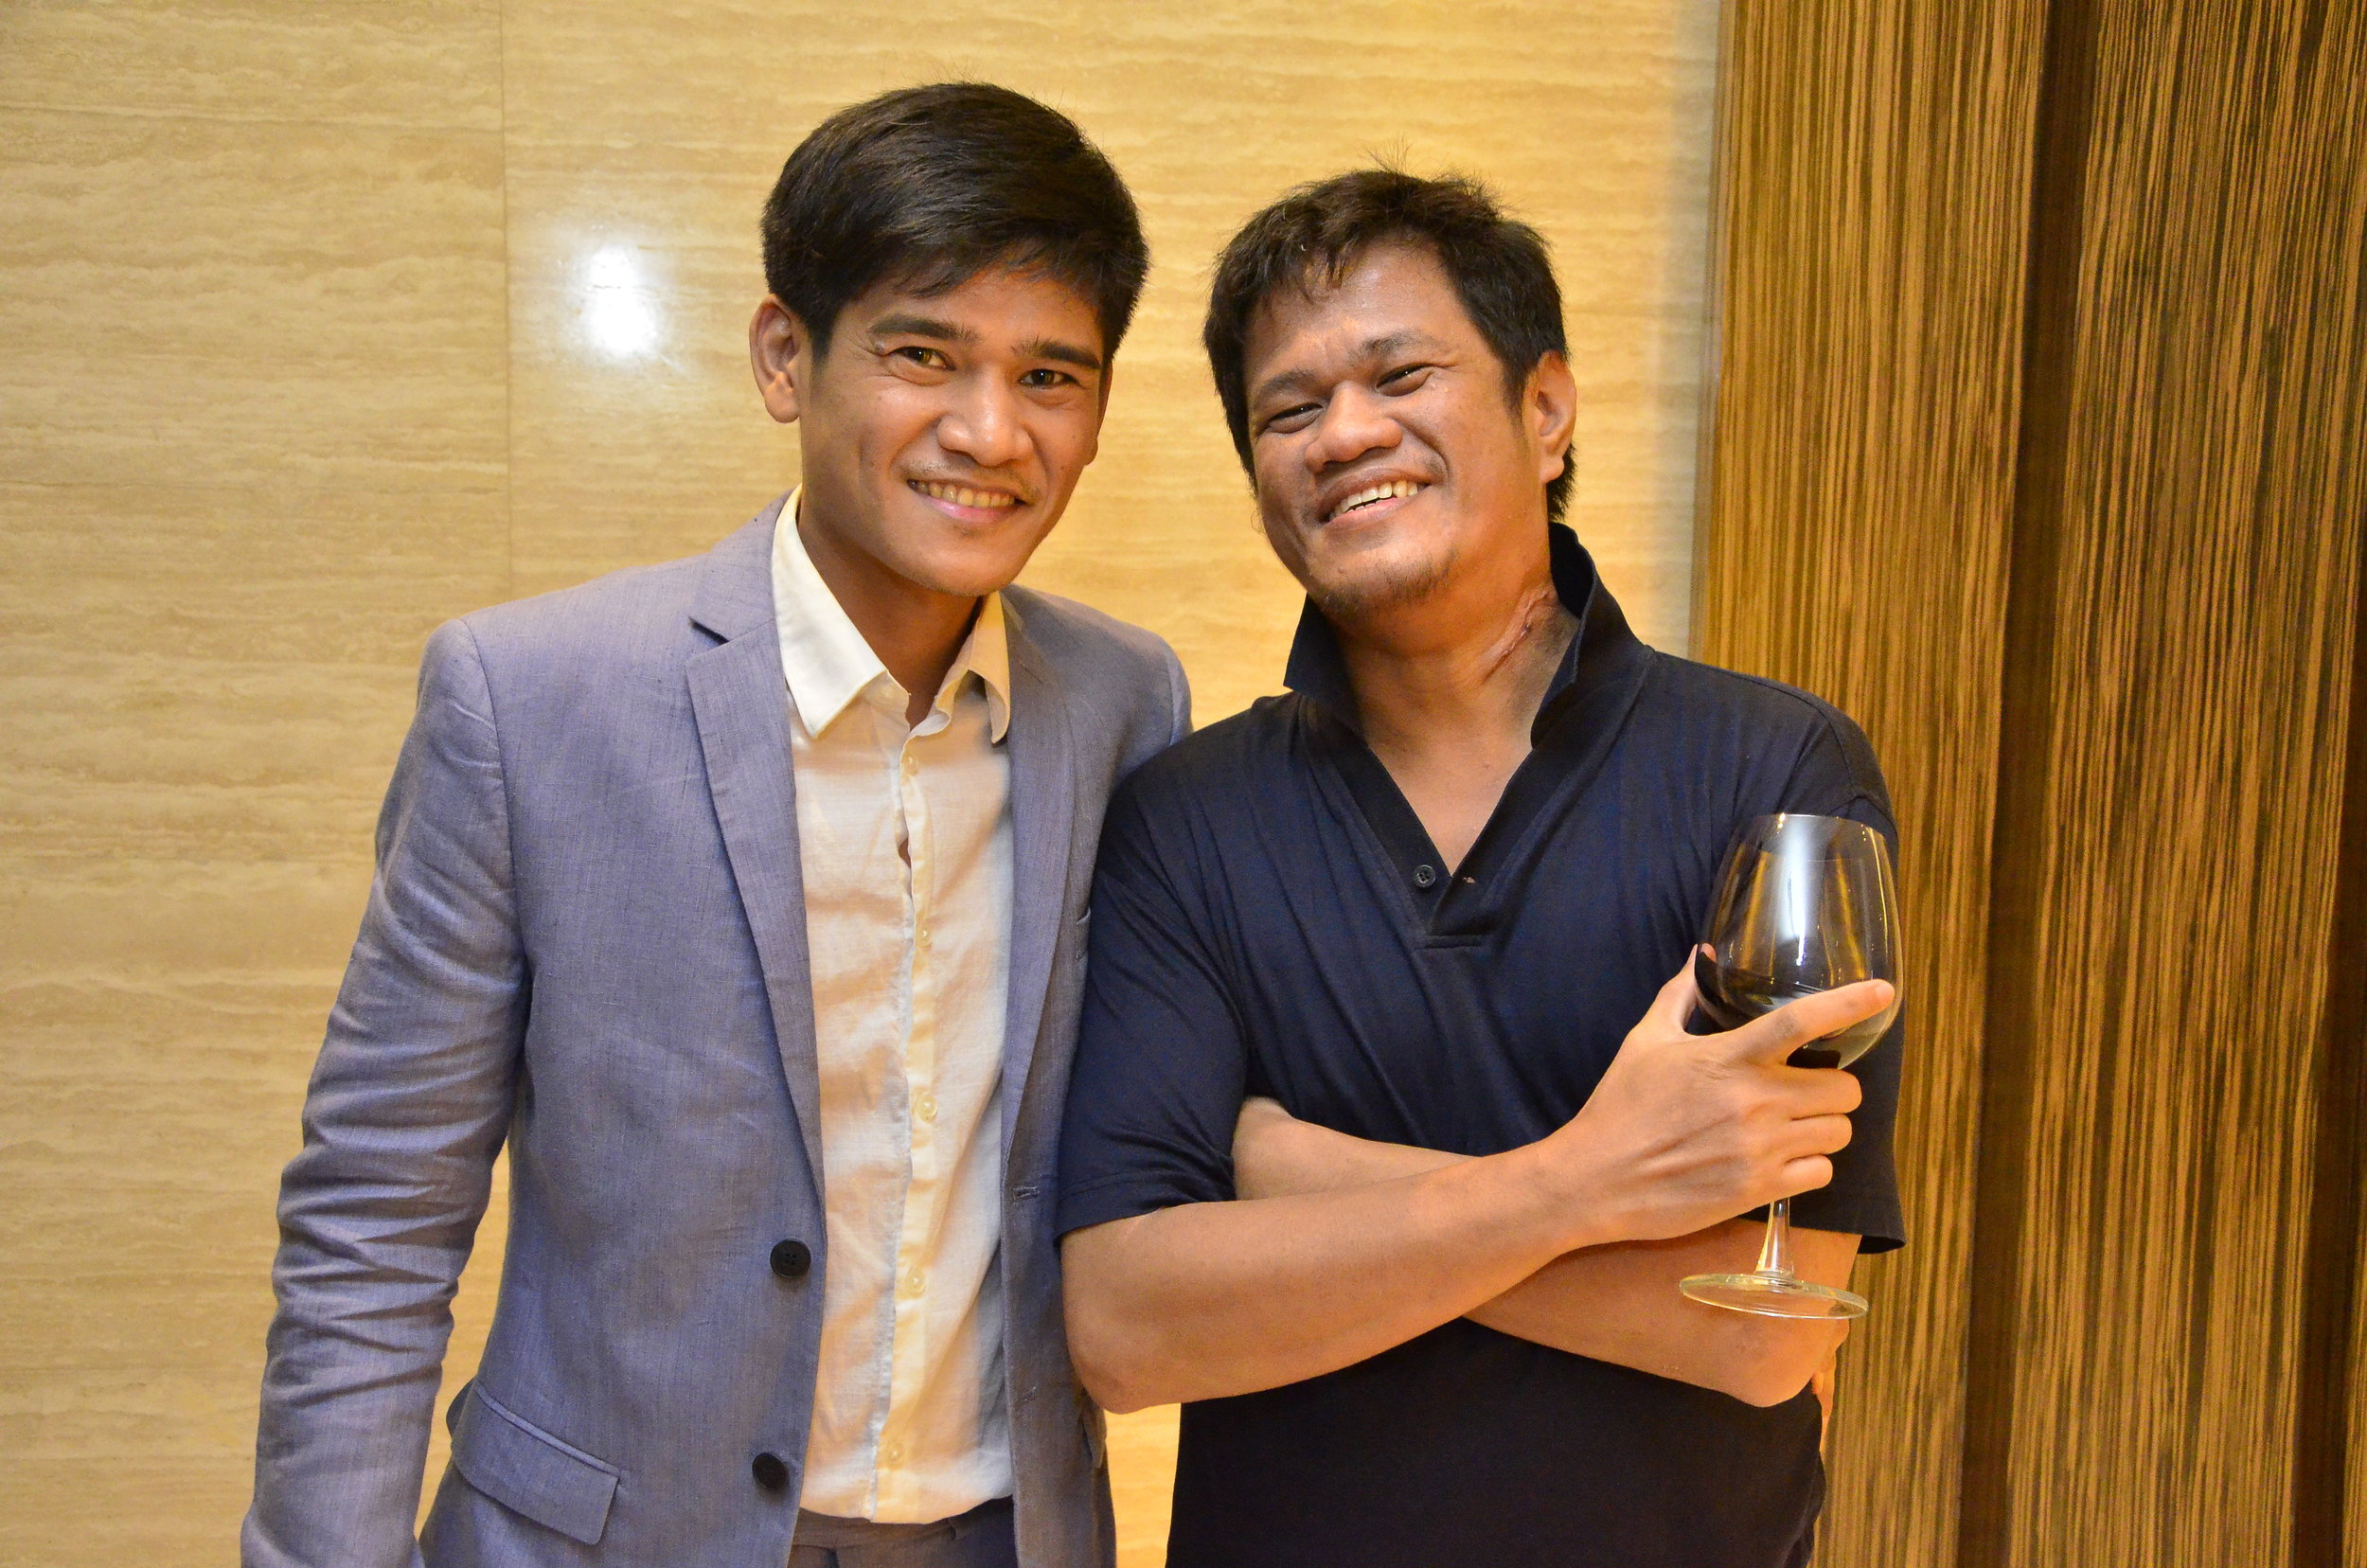 With the Curator - Philip Paraan